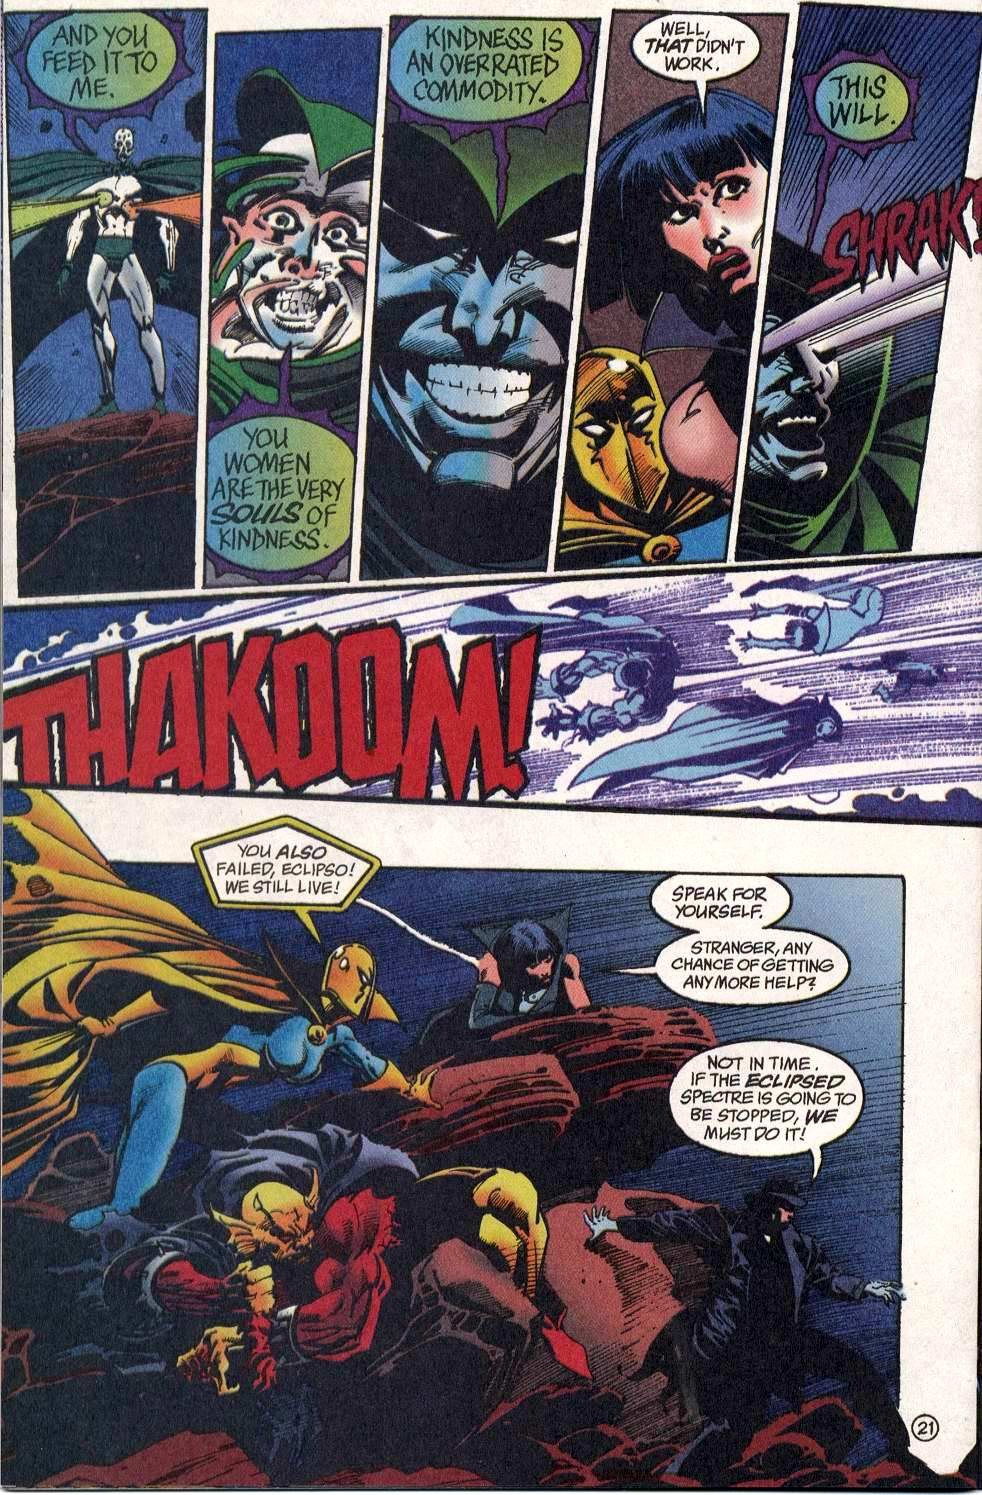 In this one, Etrigan Dr. Fate and Zatanna all take a magical blast from Eclipso Spectre.